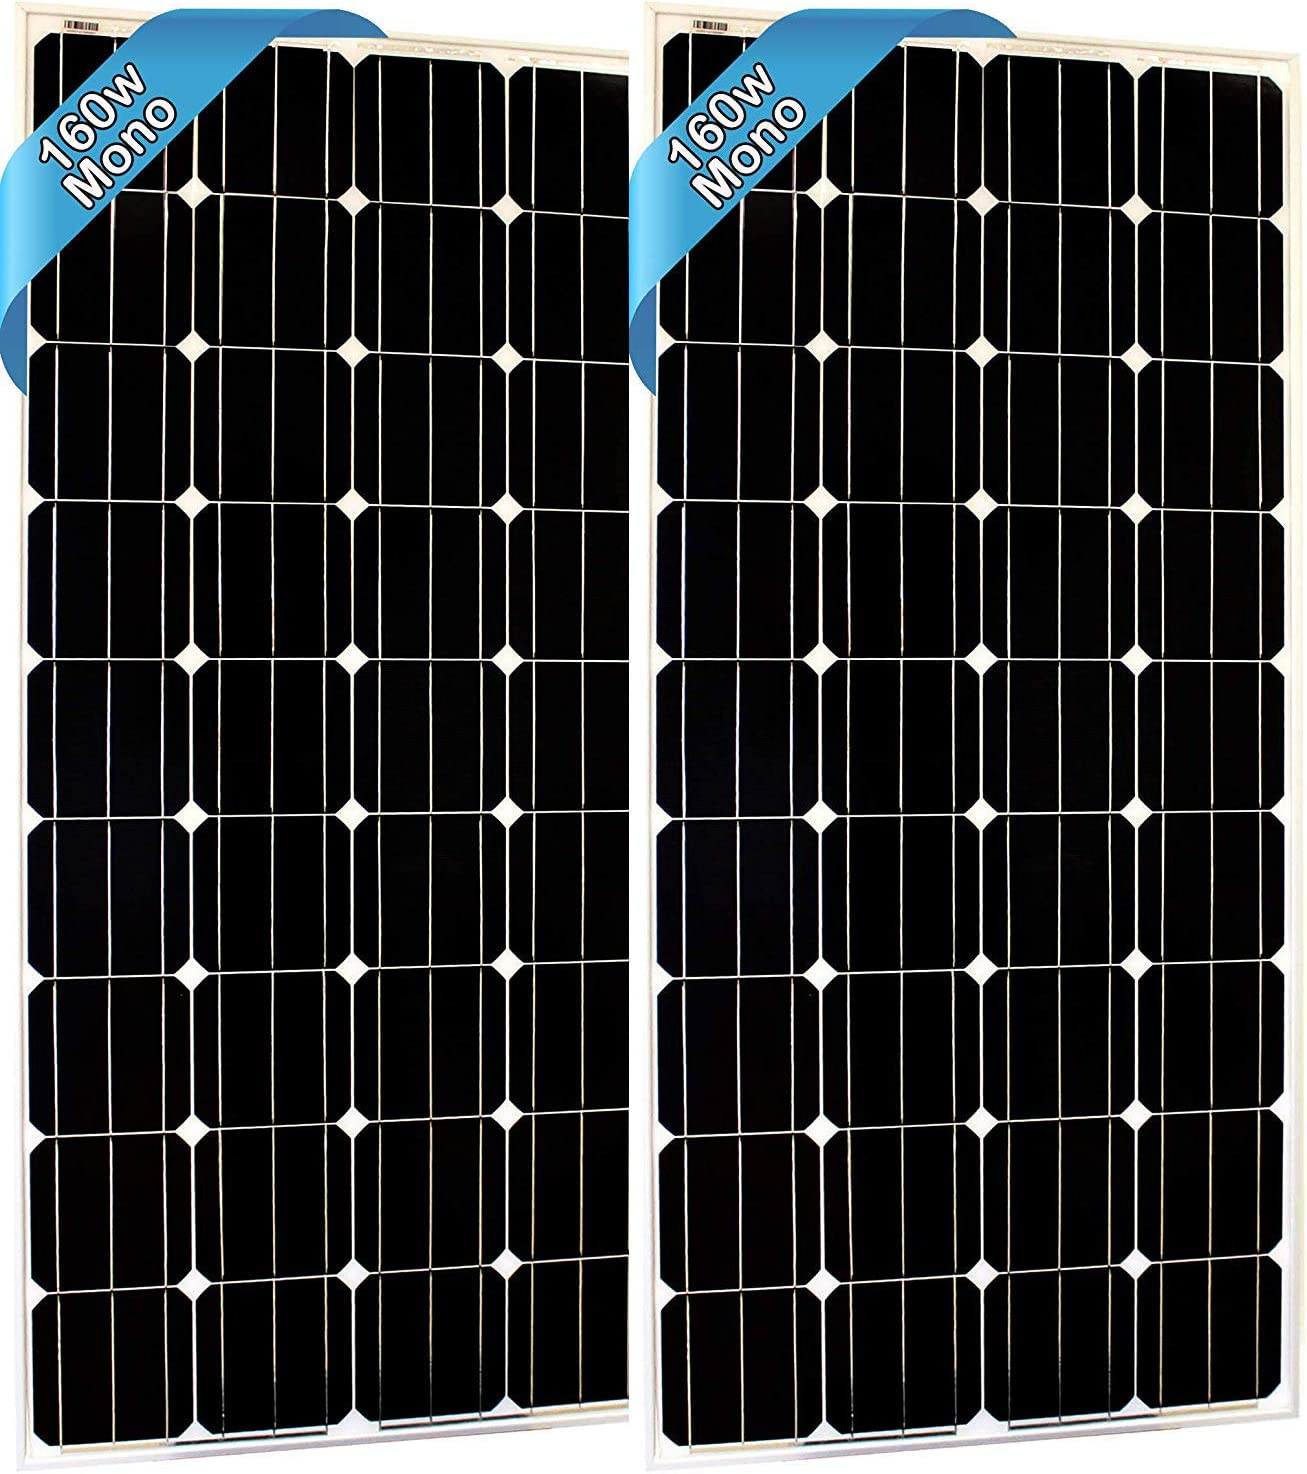 SEC 160 120 320 Watt Monocrystalline 160W 12V Solar Panel High Efficiency Mono Module RV Marine Boat Off Grid 160 WATT Mono 2X 160WATT Mono